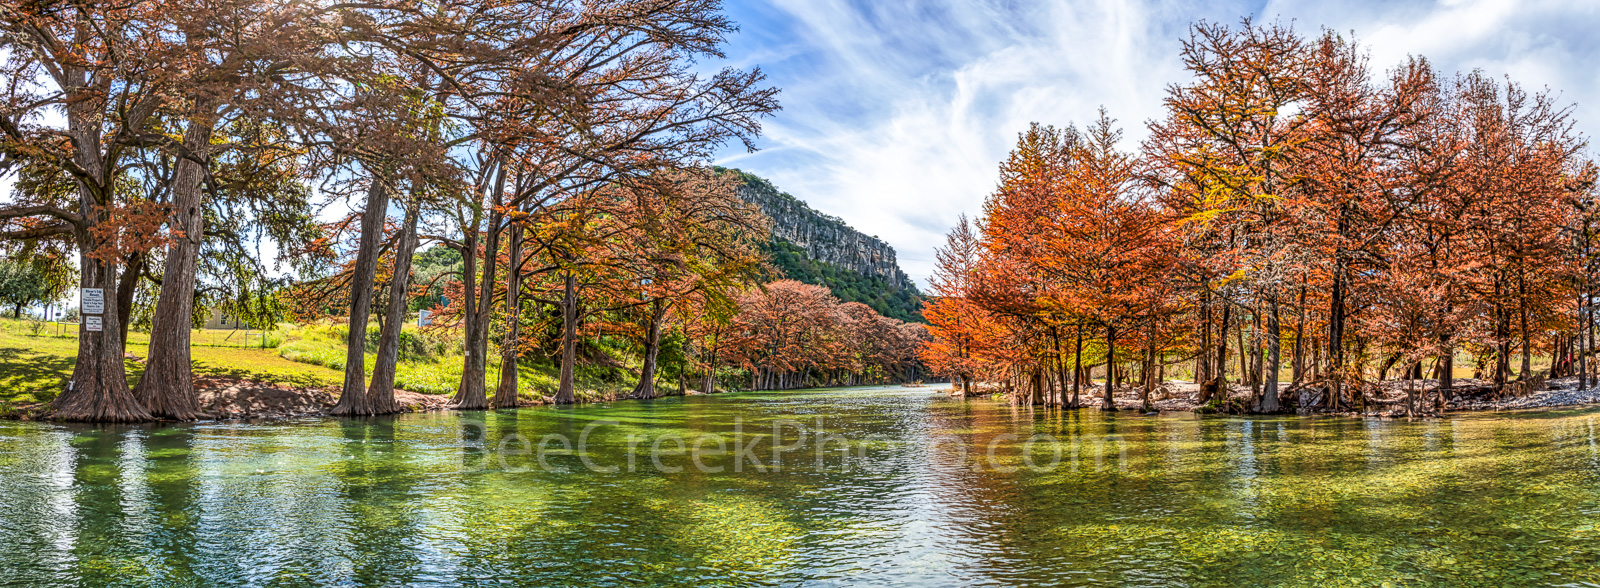 Fall Foliage, fall, cypress branches, cypress tree, maples, fall, autumn, frio river, old baldy, colors, Garner State Park, panorama, panoramic, Texas, landscape, texas hill country, canvas, prints, T, photo